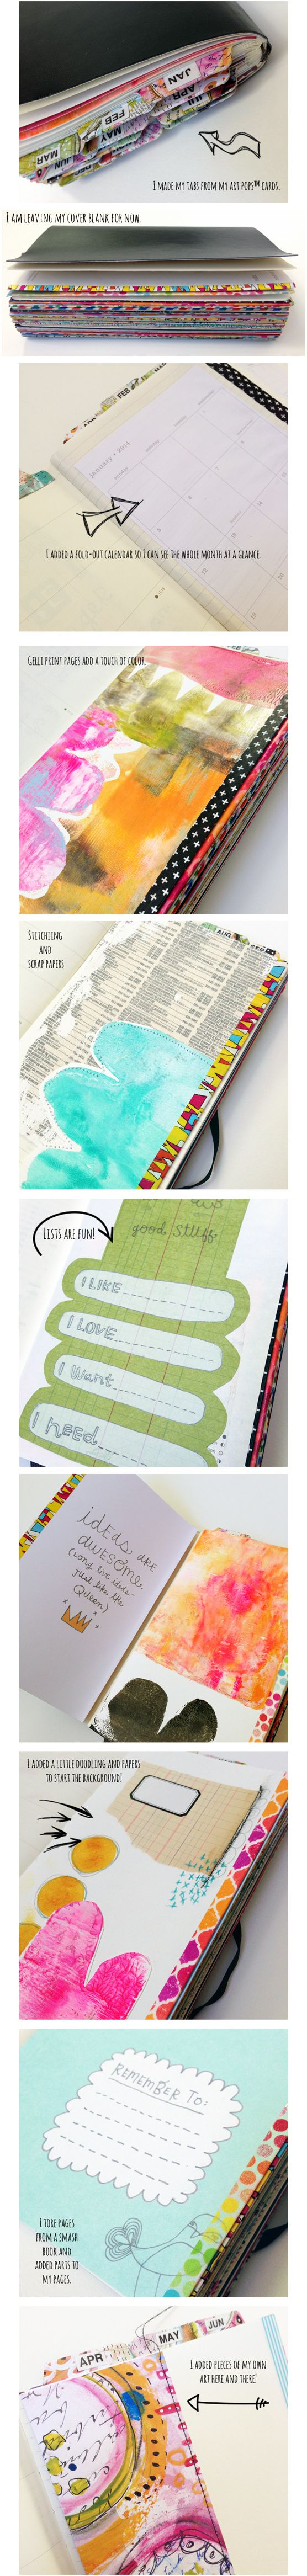 Muy buena idea para crear tu art journal